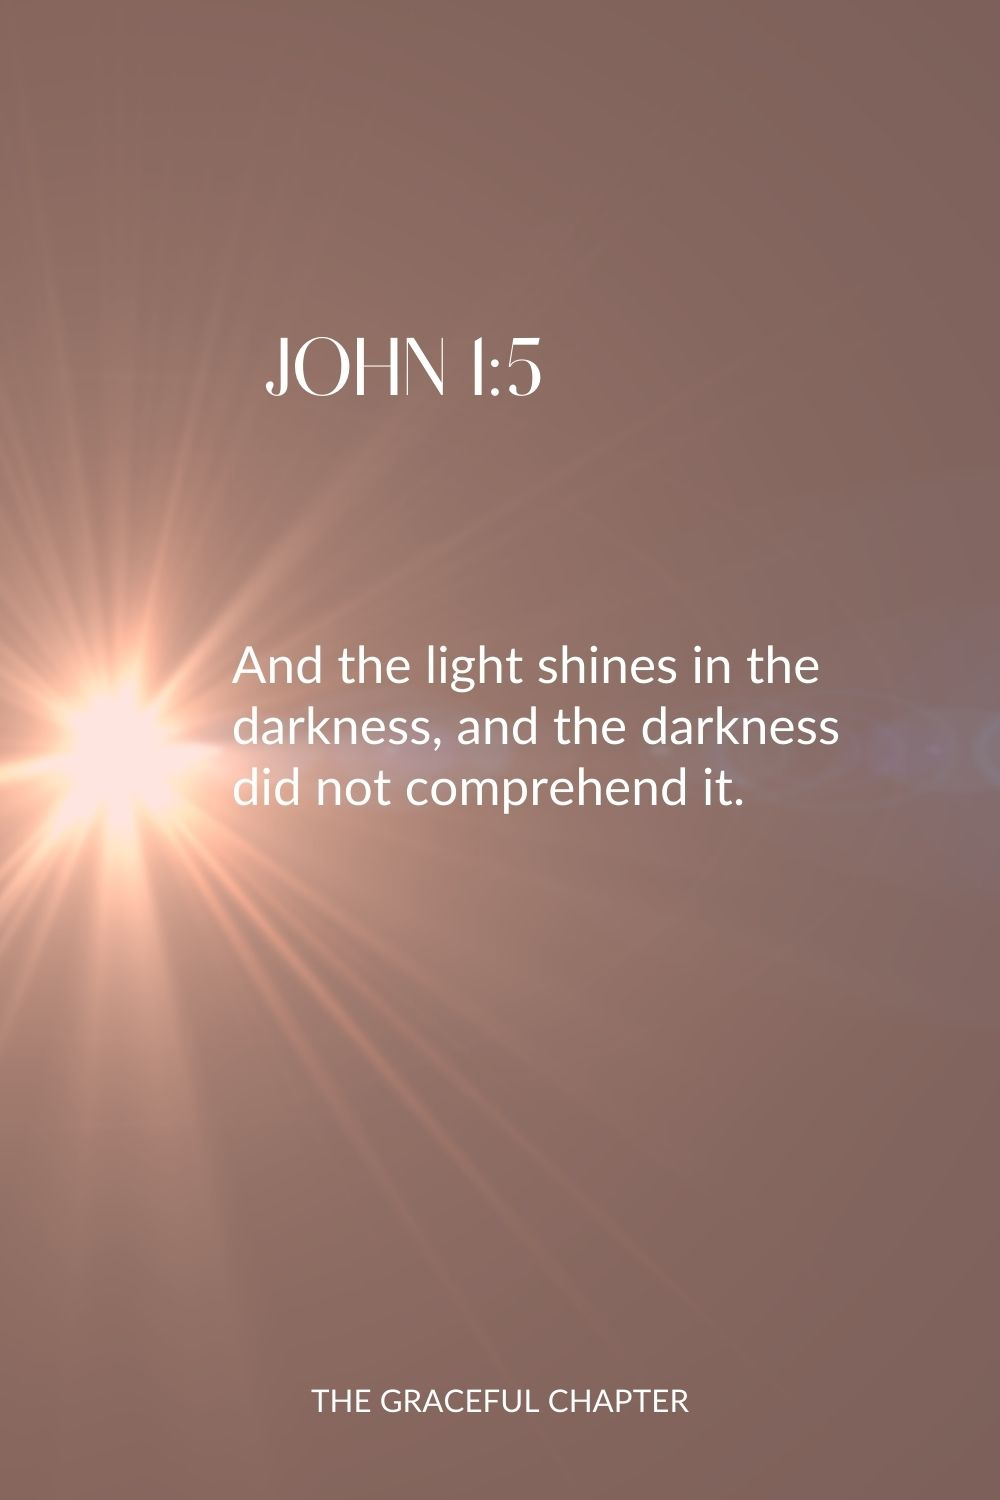 And the light shines in the darkness, and the darkness did not comprehend it. John 1:5